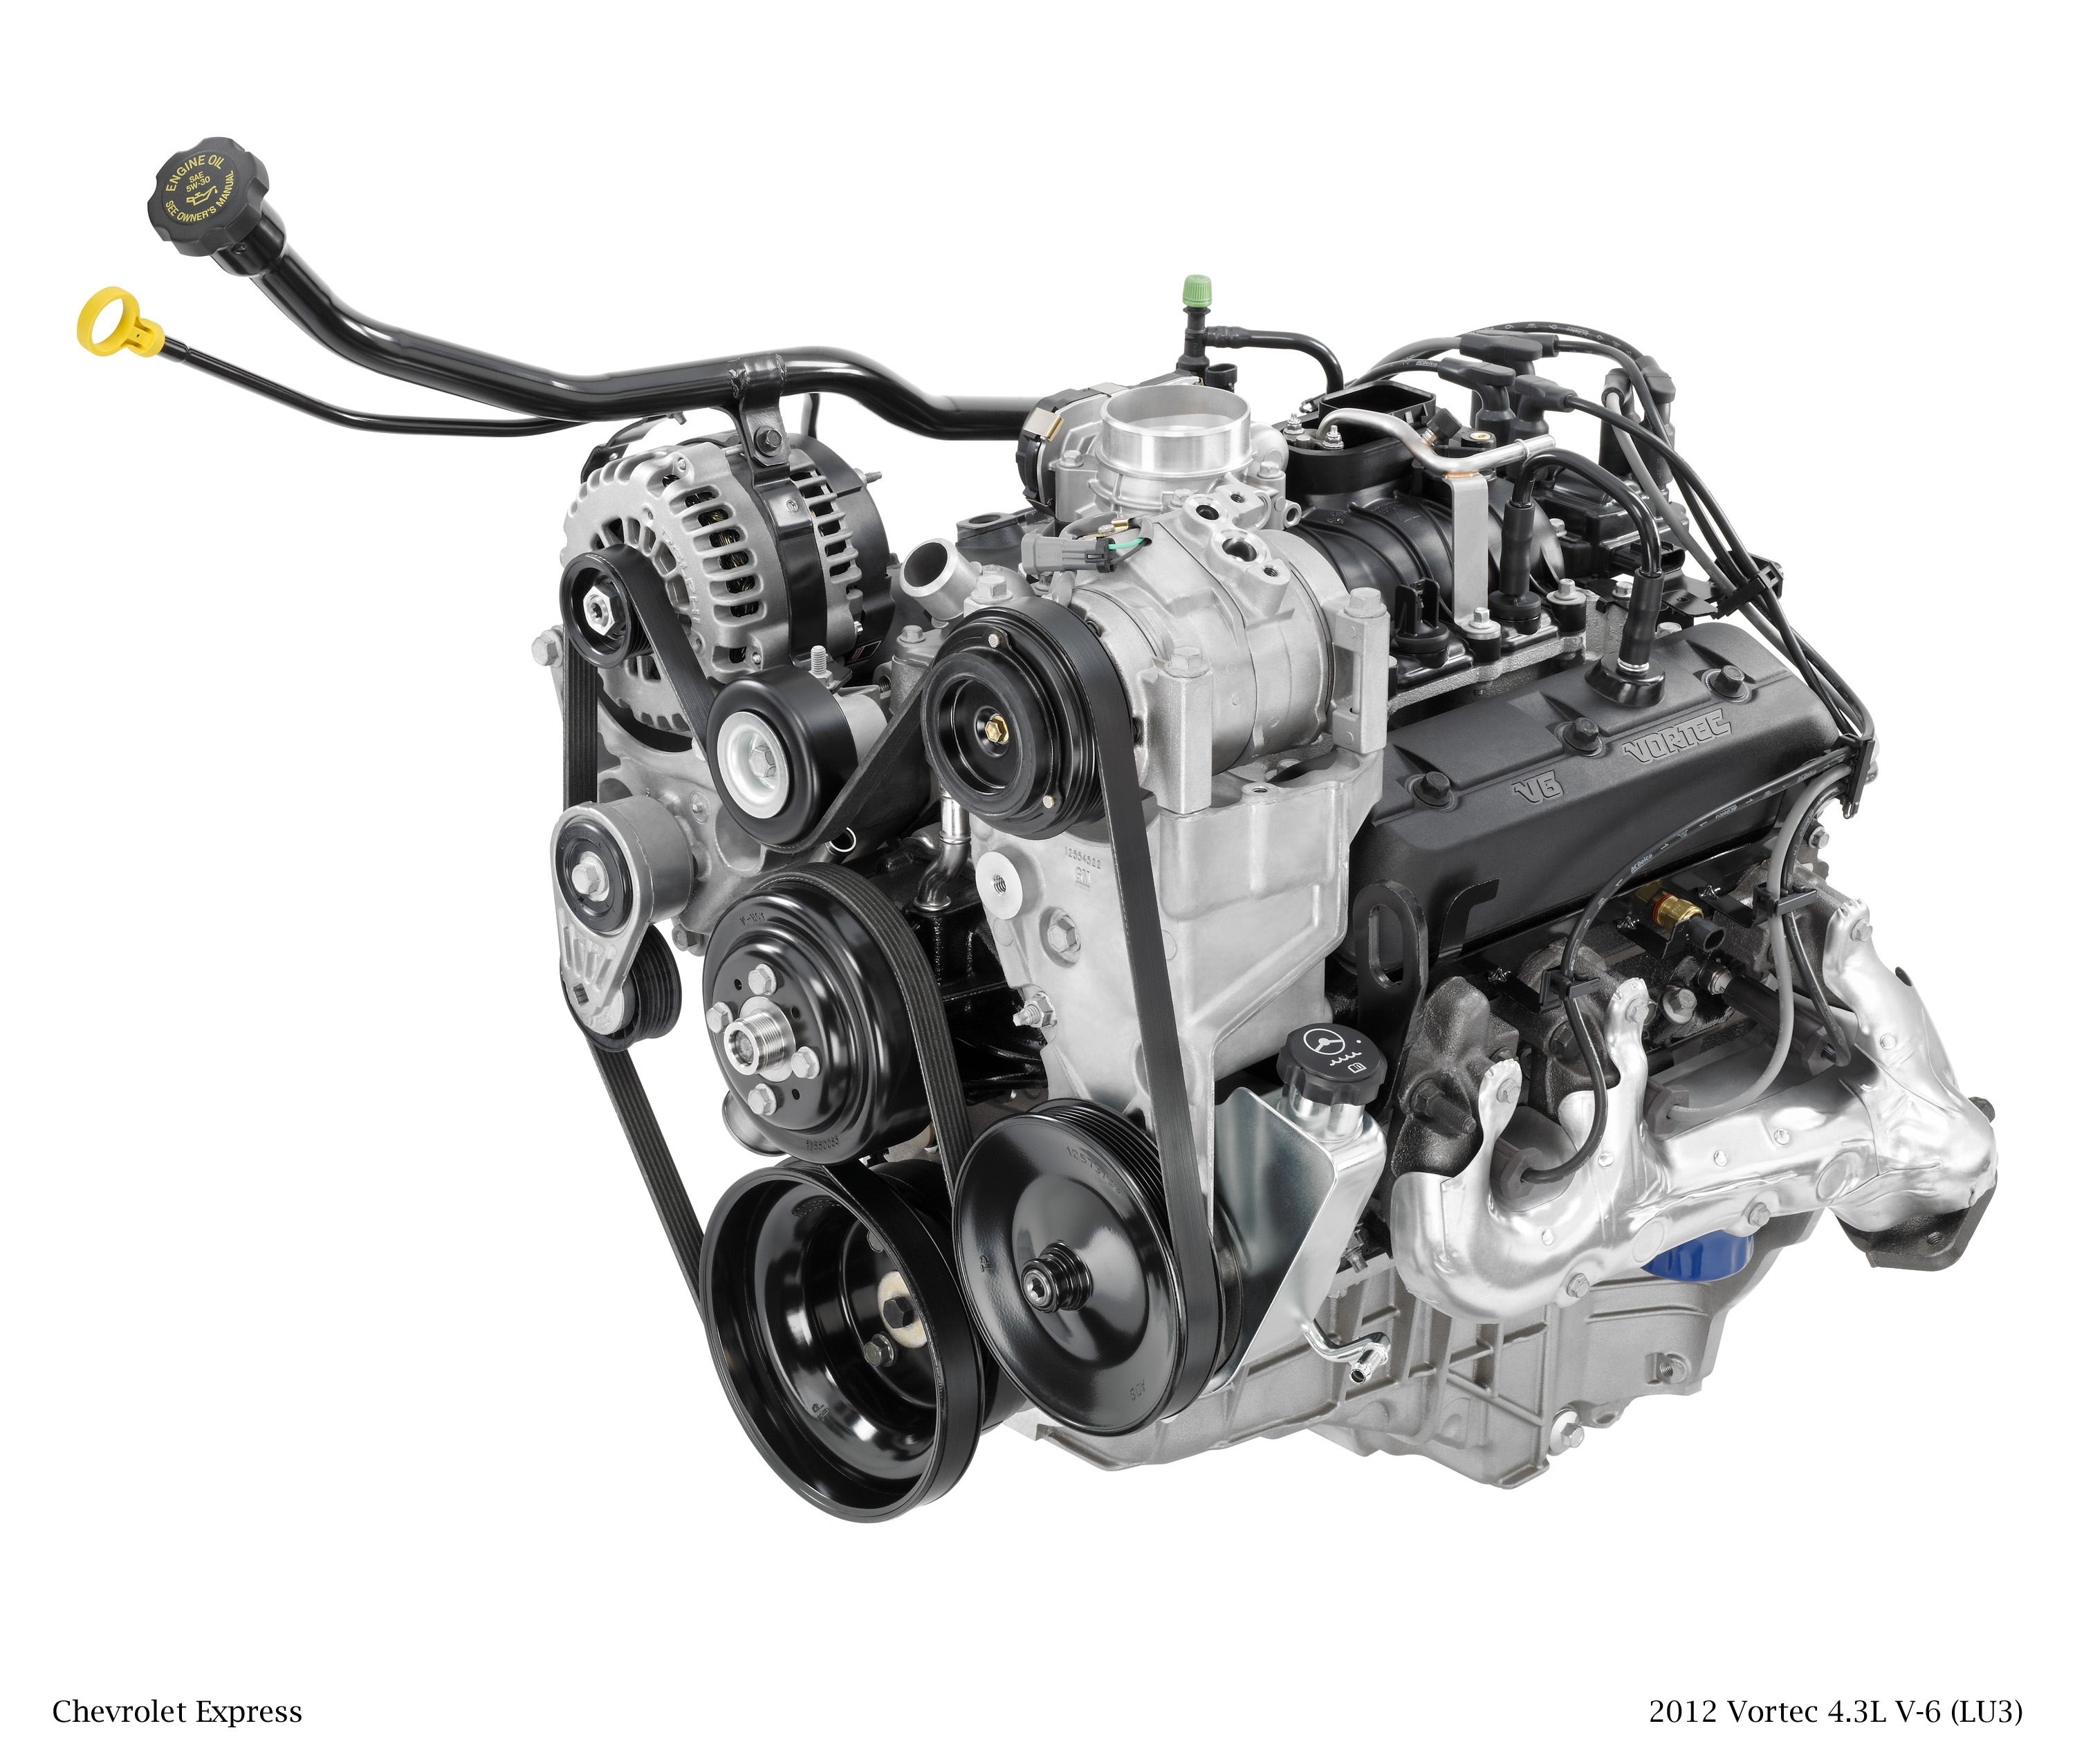 2012 Vortec 4.3L V-6 (LU3) for Chevrolet Express, Engines We're Happy to See Retire